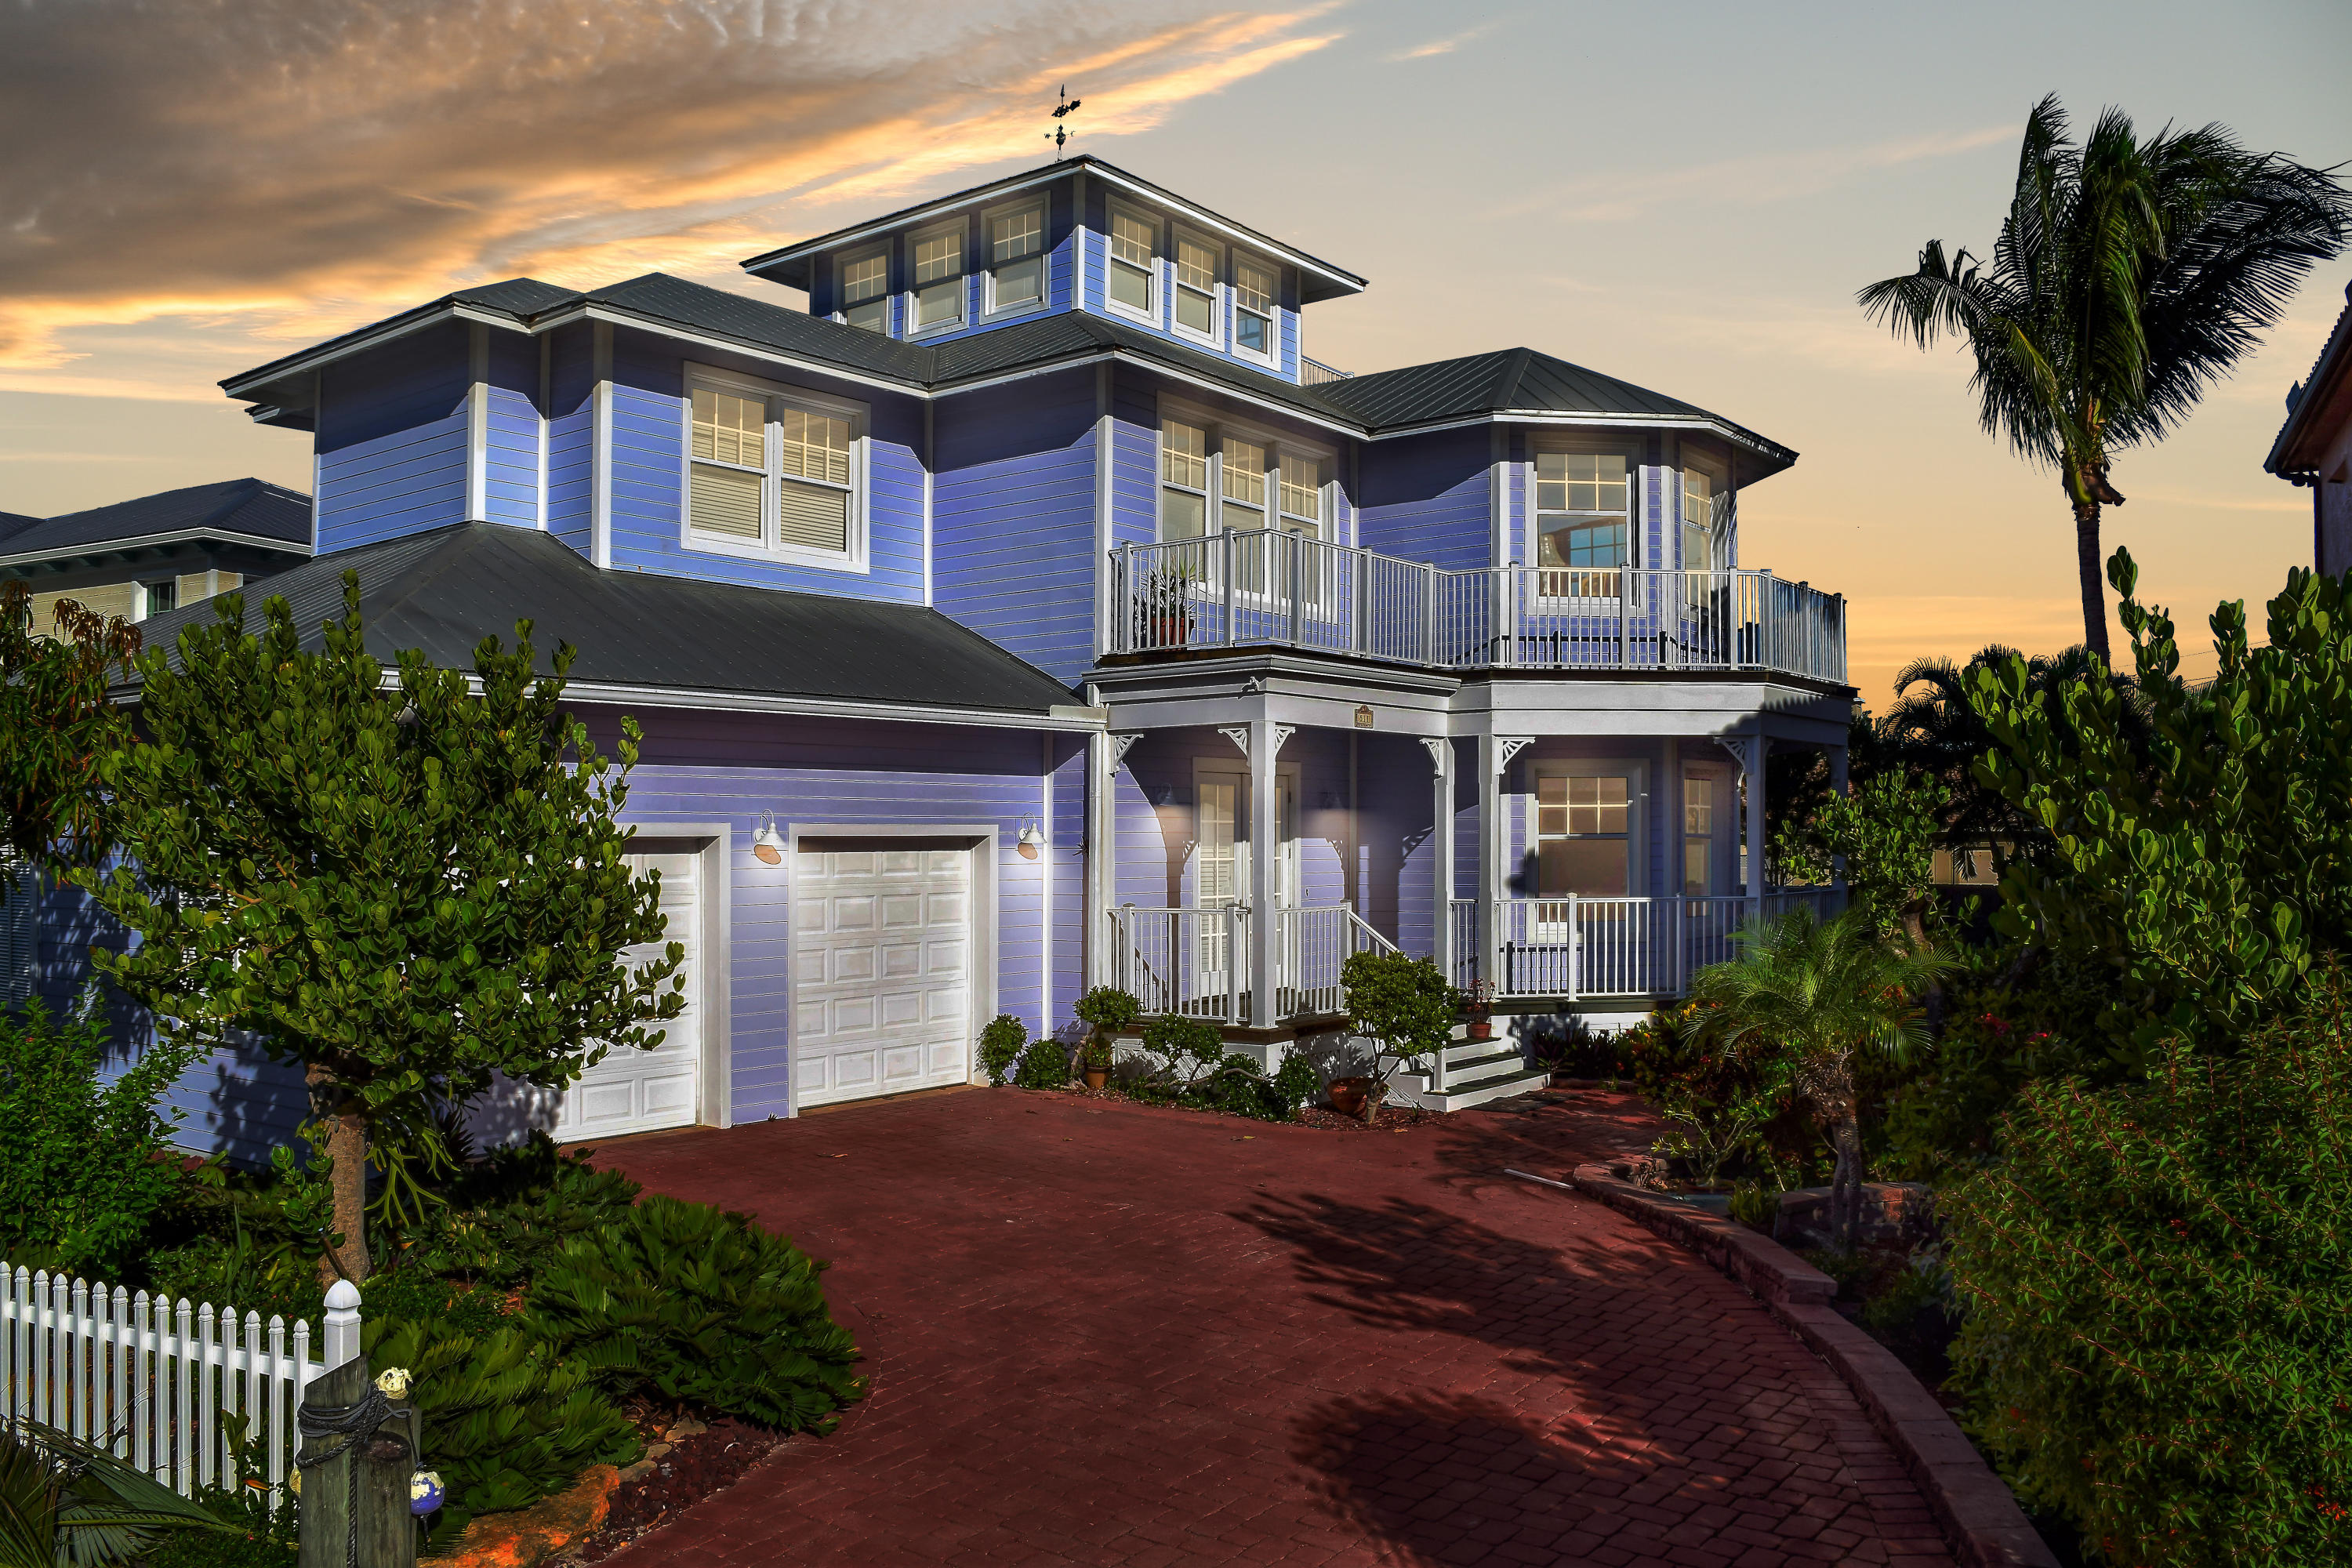 New Home for sale at 511 Saturn Lane in Juno Beach